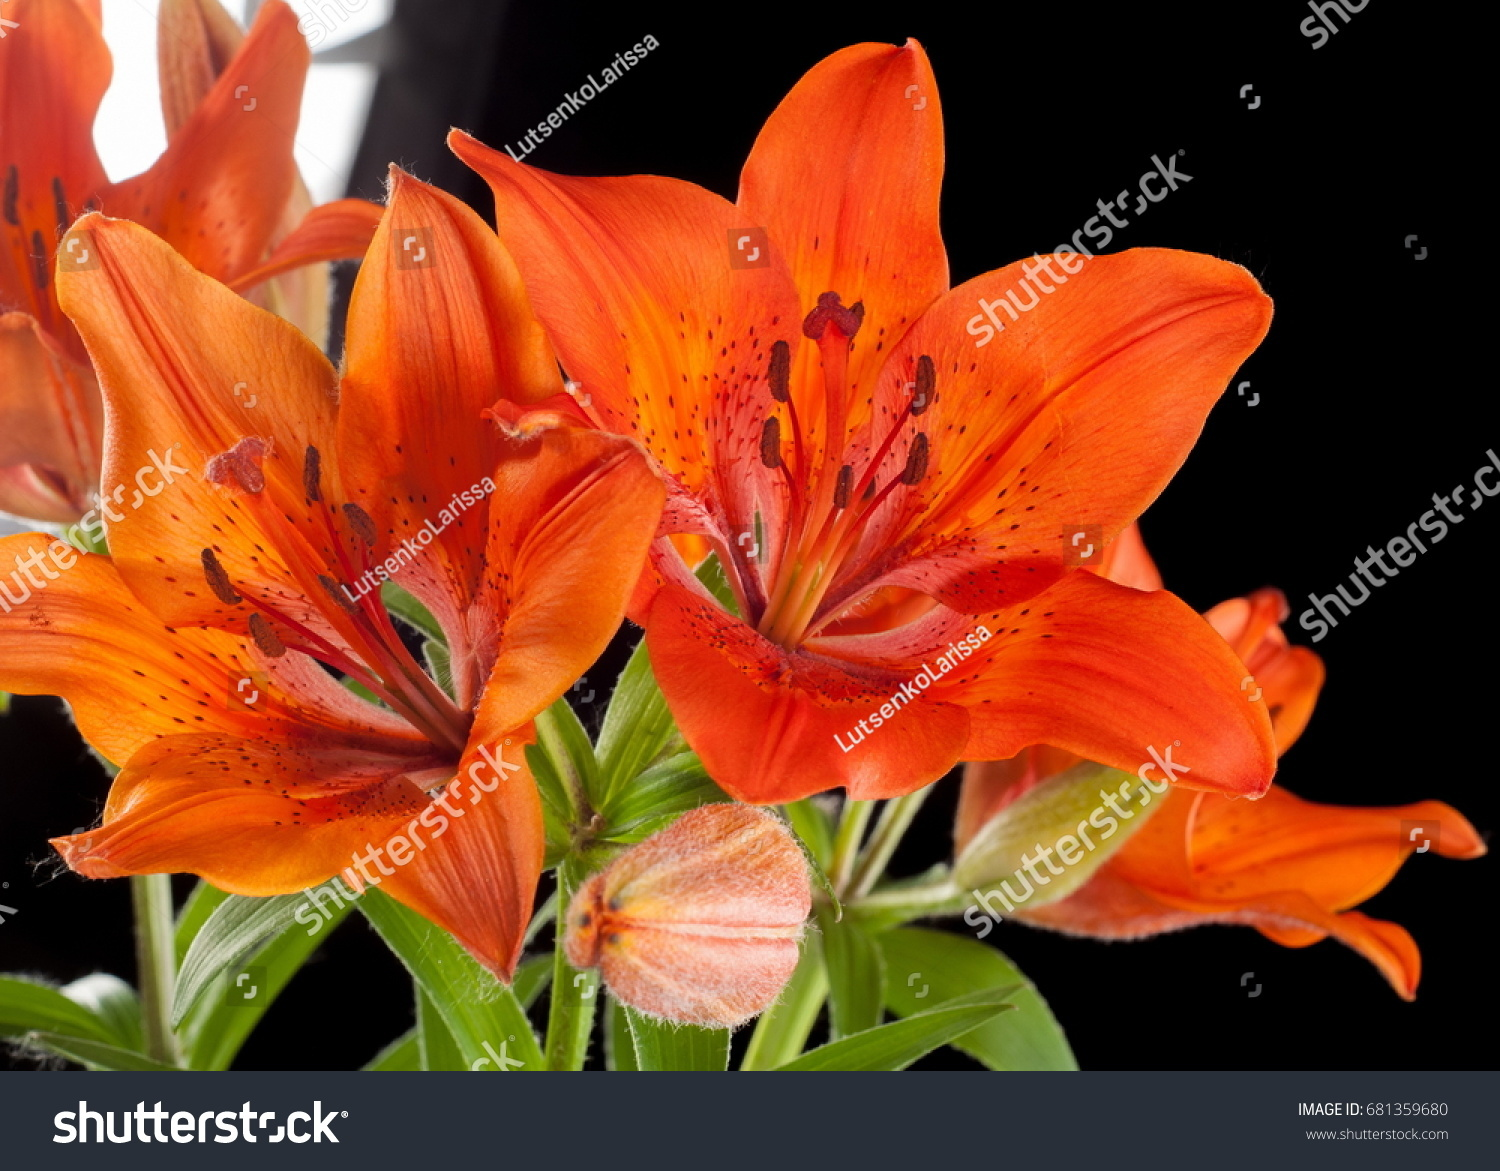 Tiger lily flower taken closeup ez canvas izmirmasajfo